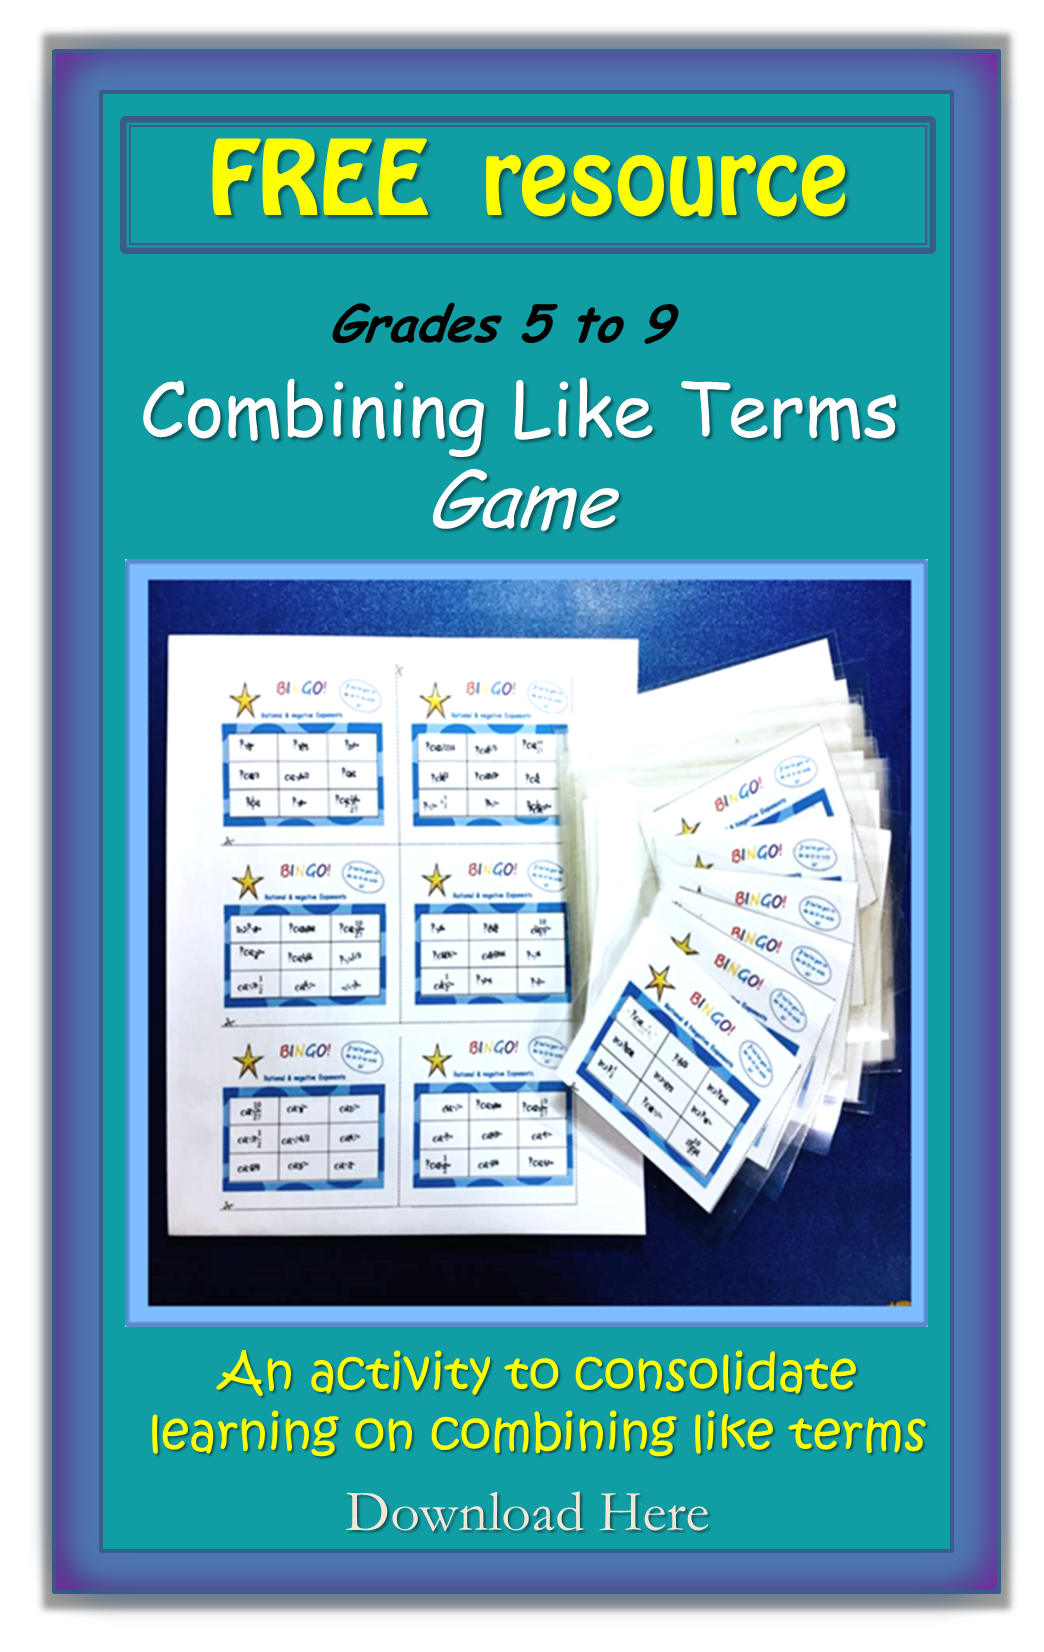 Free downloadable game activity on combining Like Terms